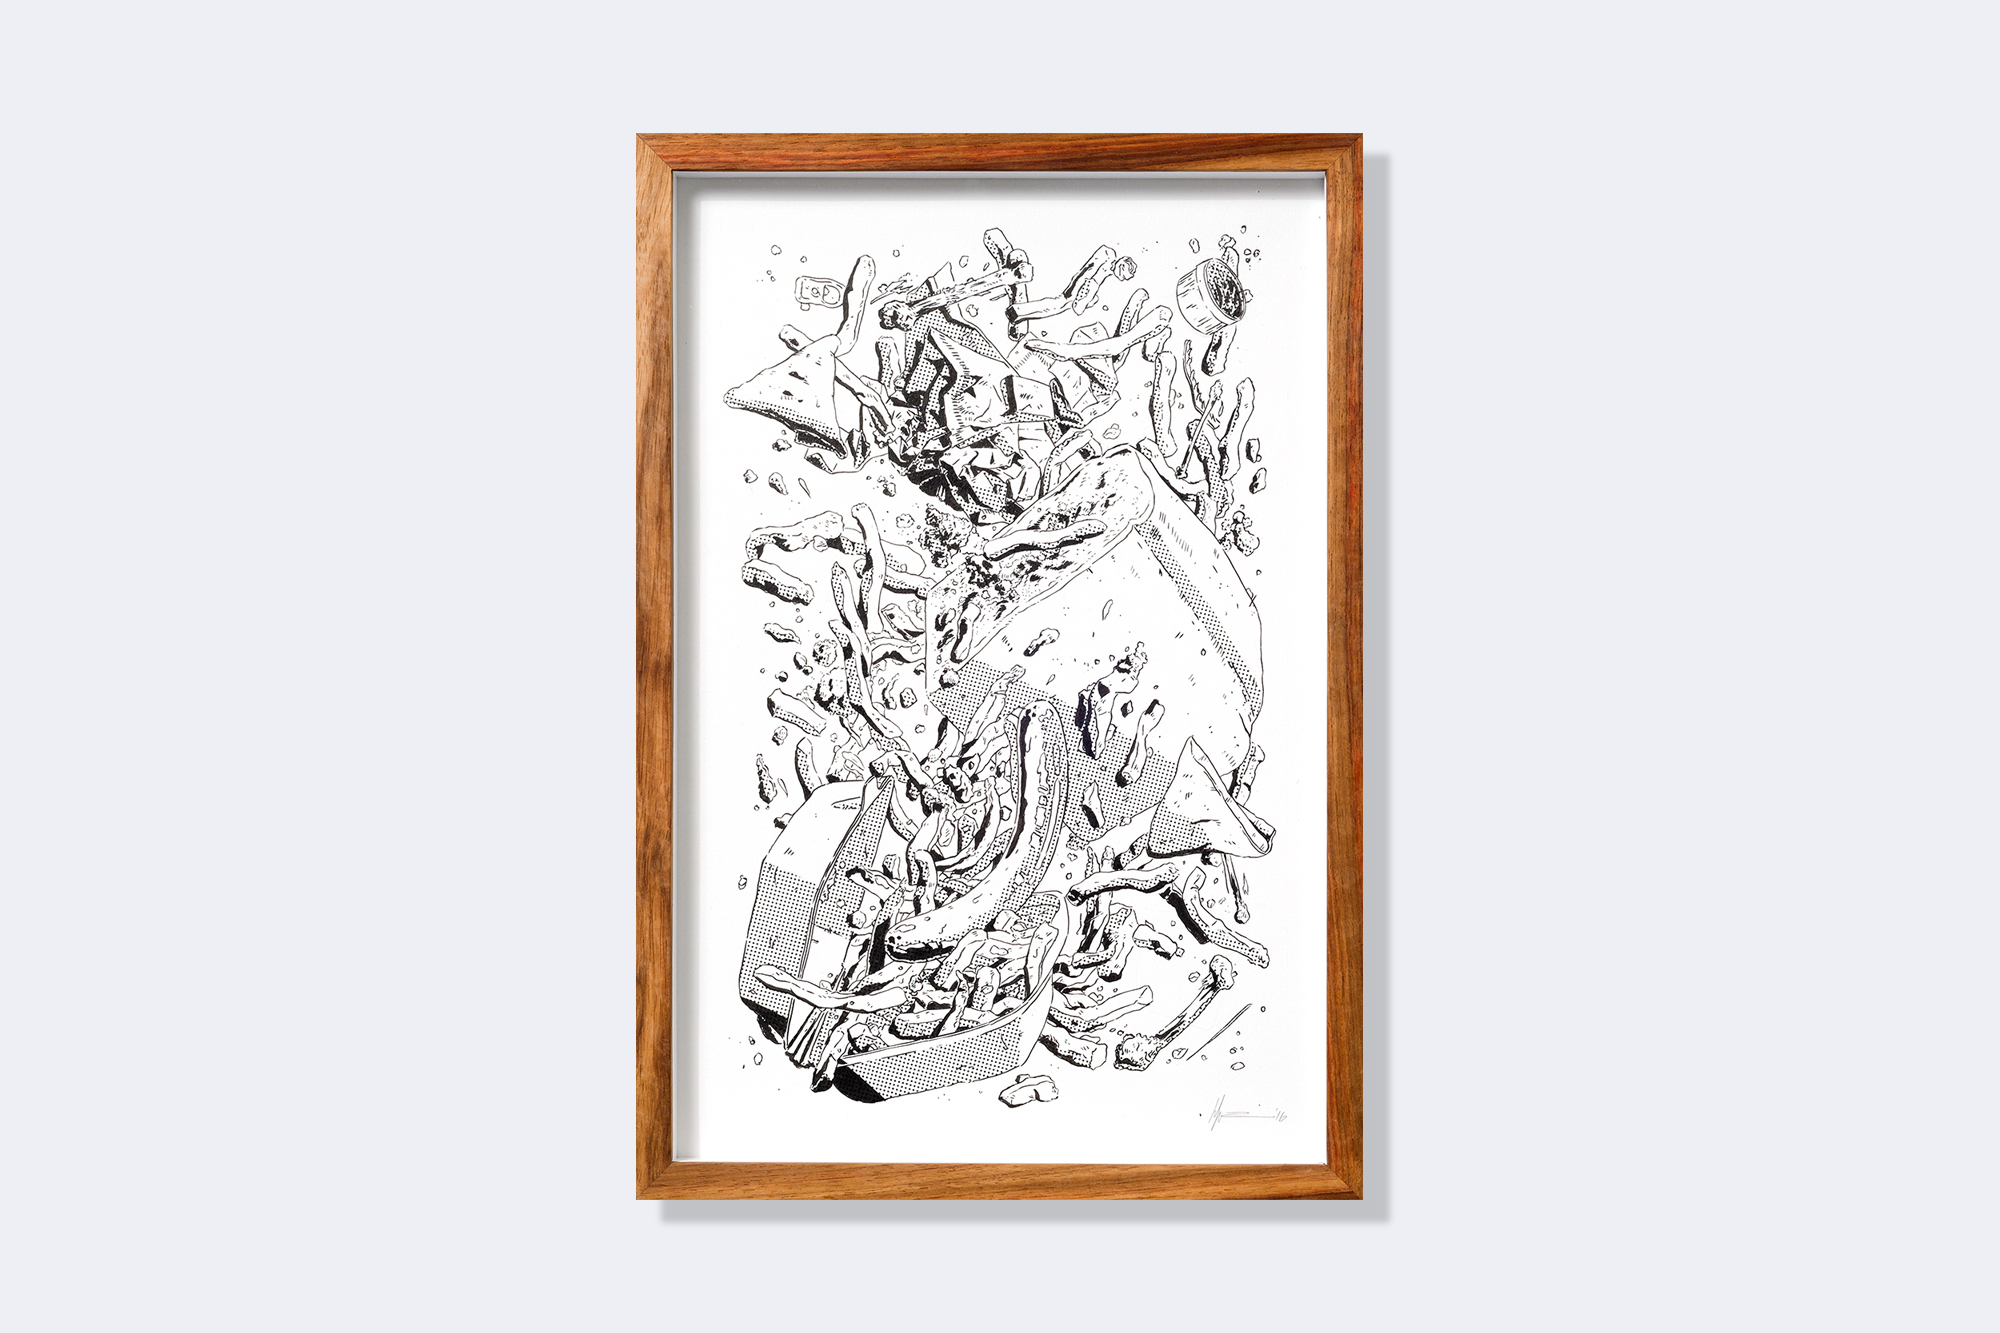 HANNO VAN ZYL. Hot Chips, 2016. Brush, ink, silkscreen monoprint. 445 x 305mm. Framed copy